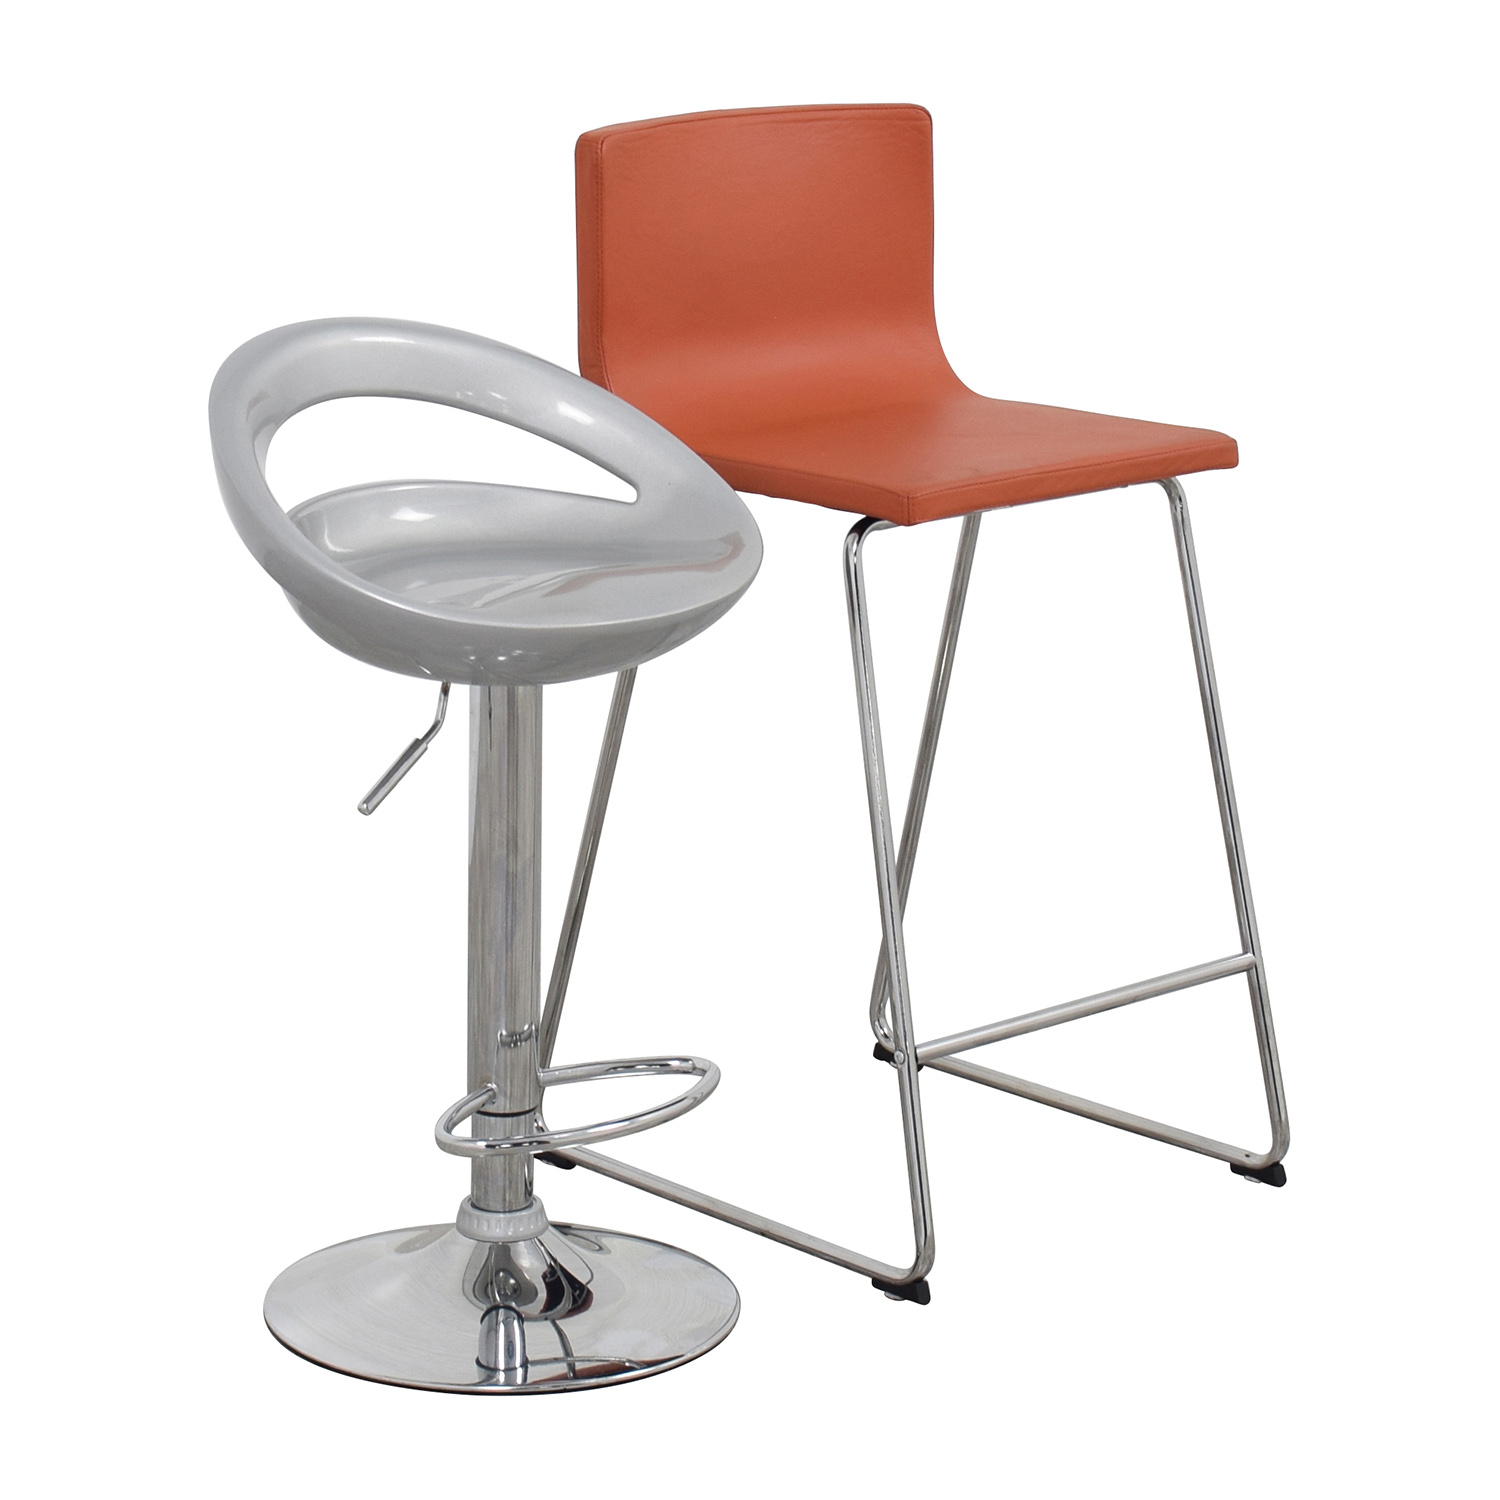 Pair of Modern Orange and Silver Bar Stools nyc